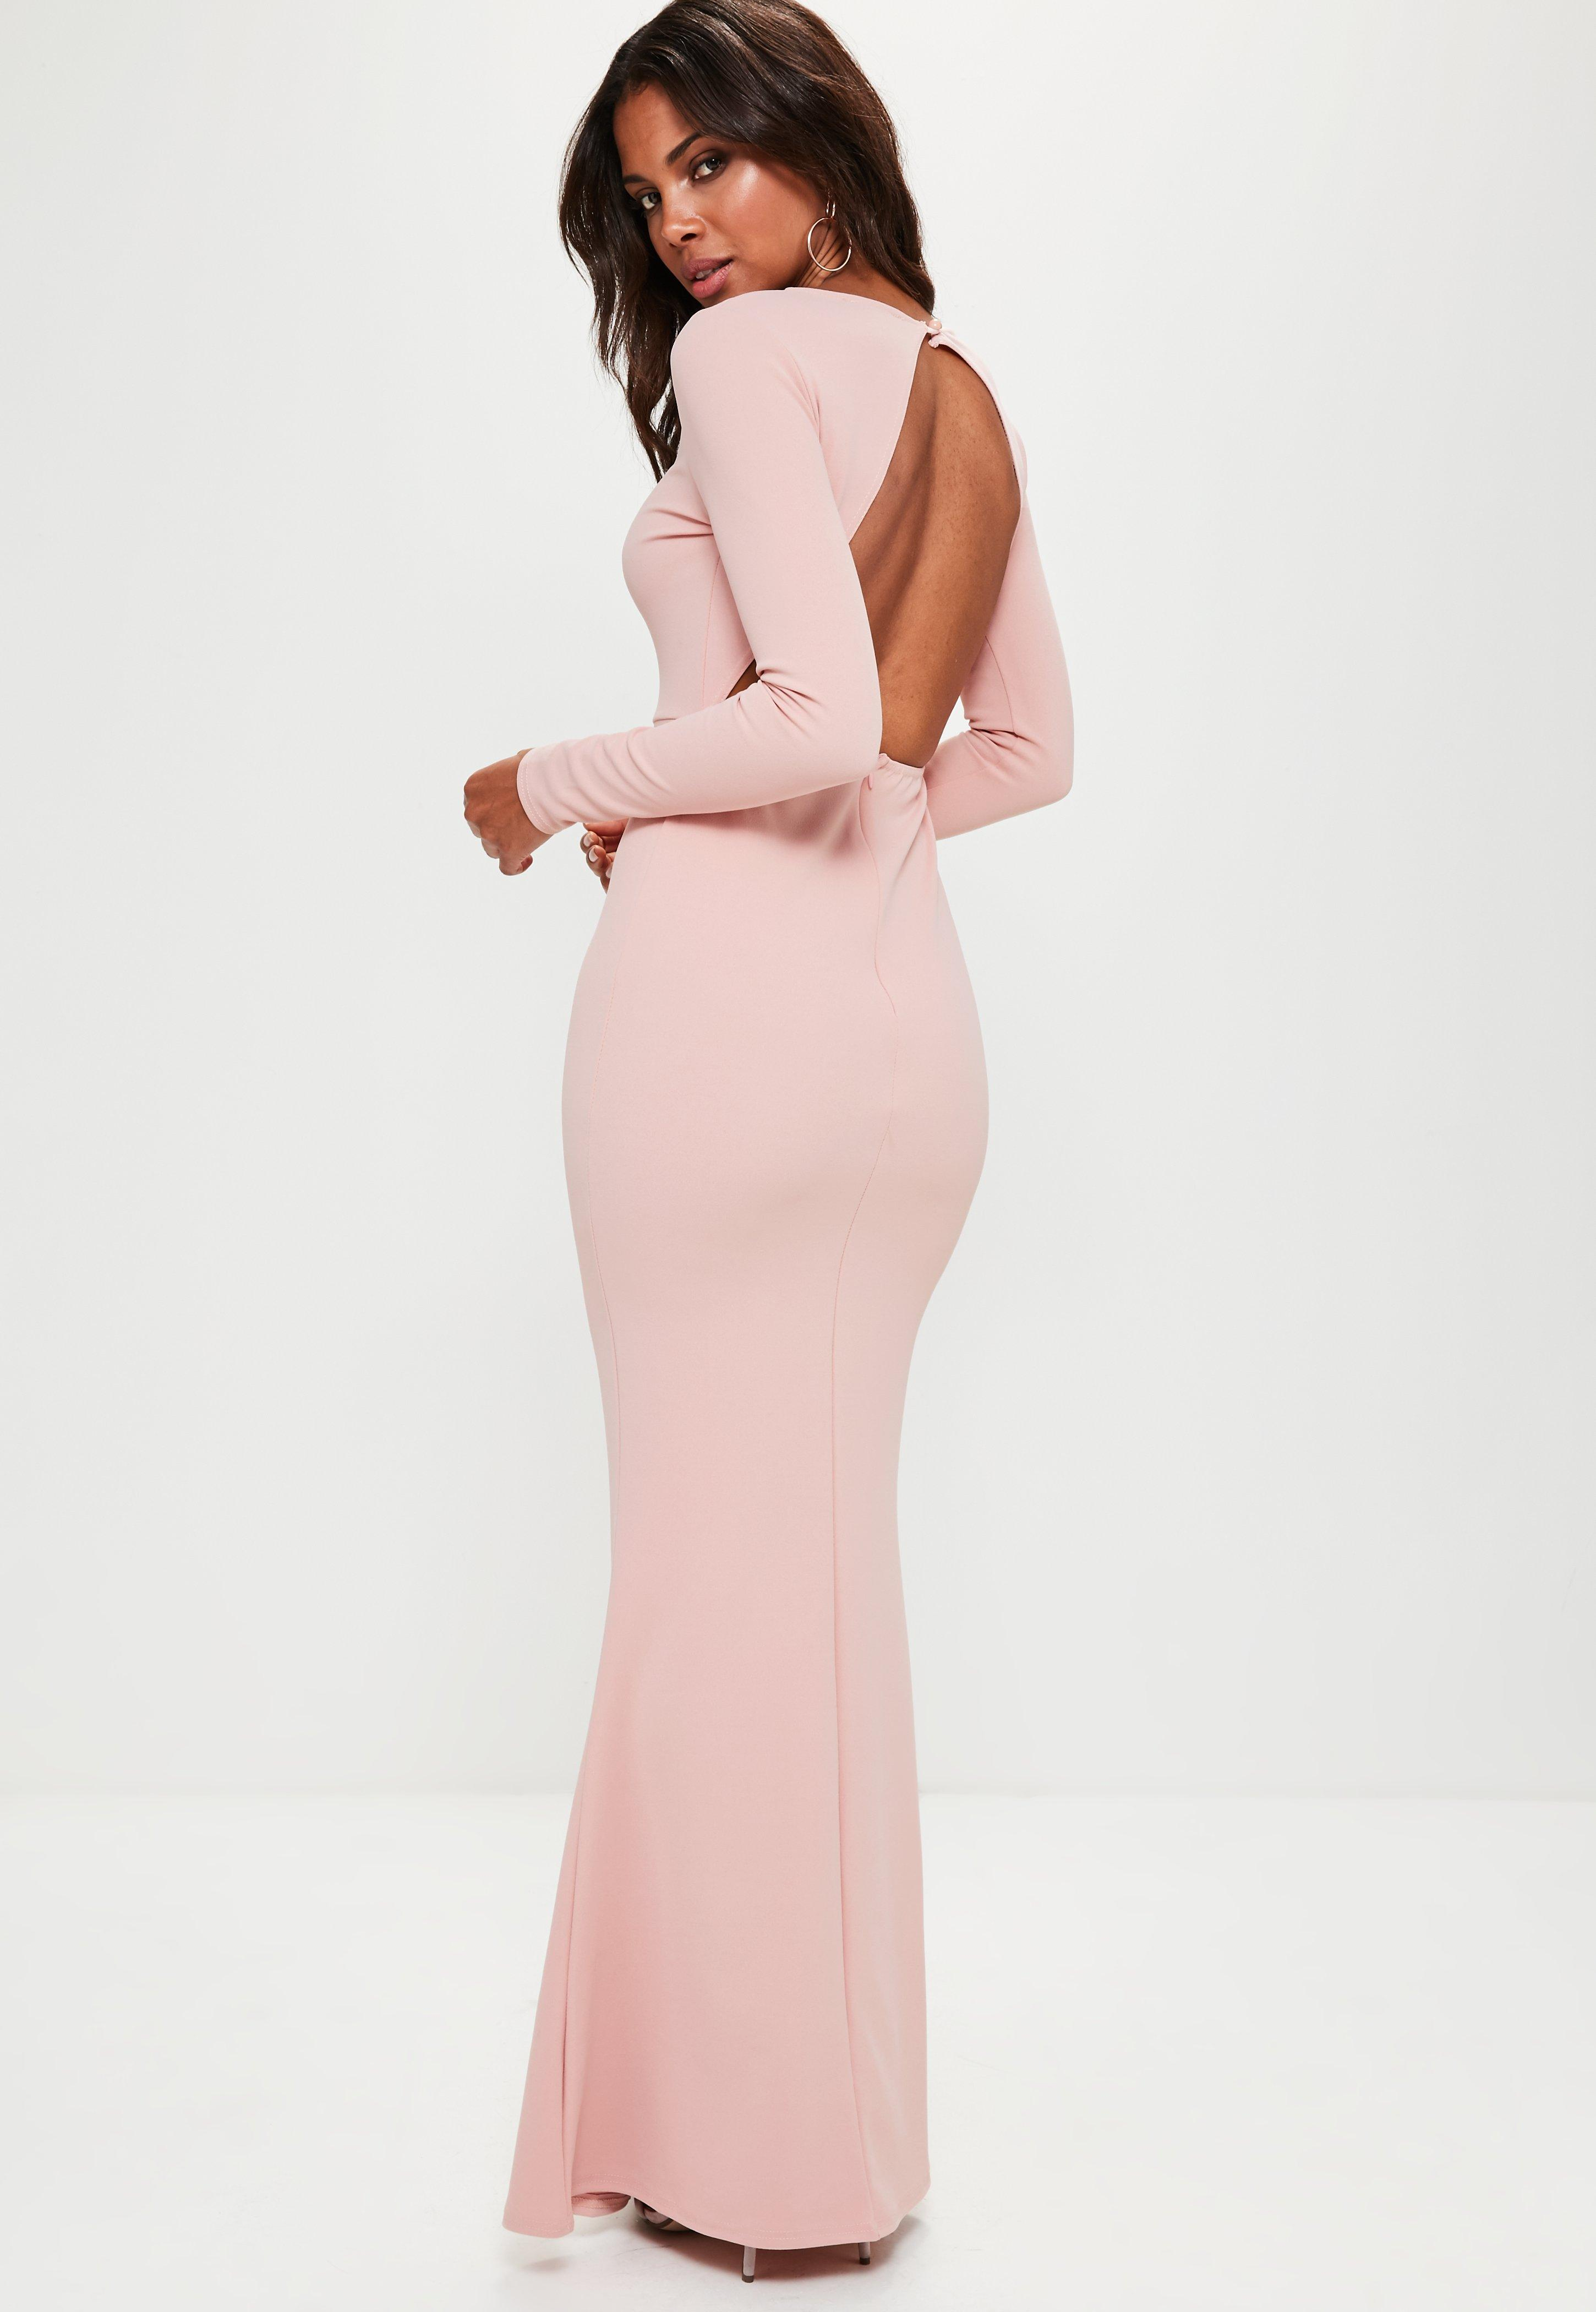 b31a0a0418eb Lyst - Missguided Pink Long Sleeve Open Back Maxi Dress in Pink